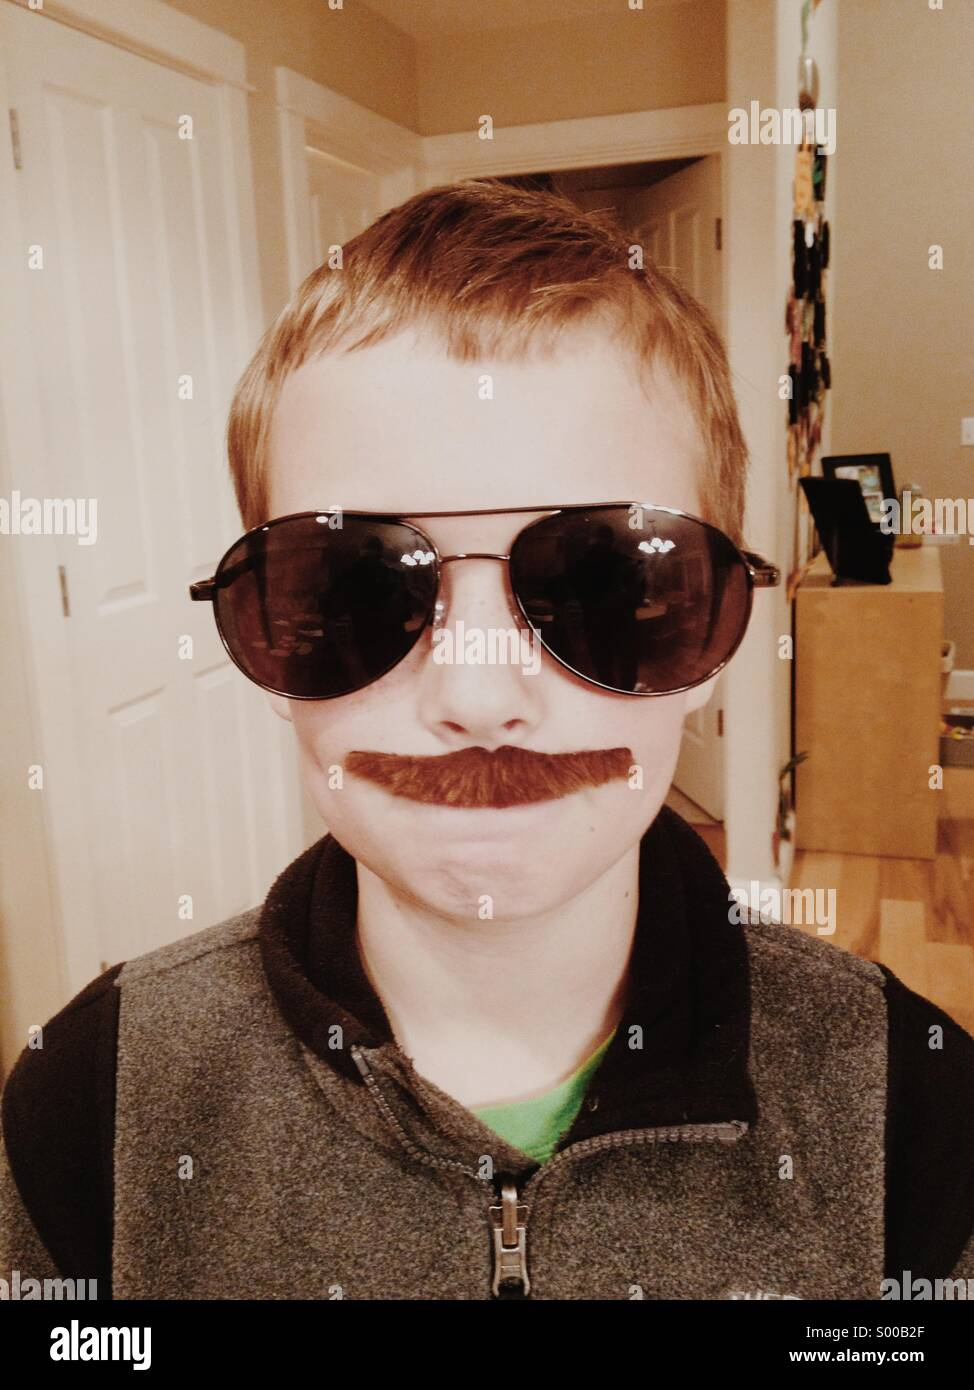 Kid with fake moustache et lunettes Photo Stock